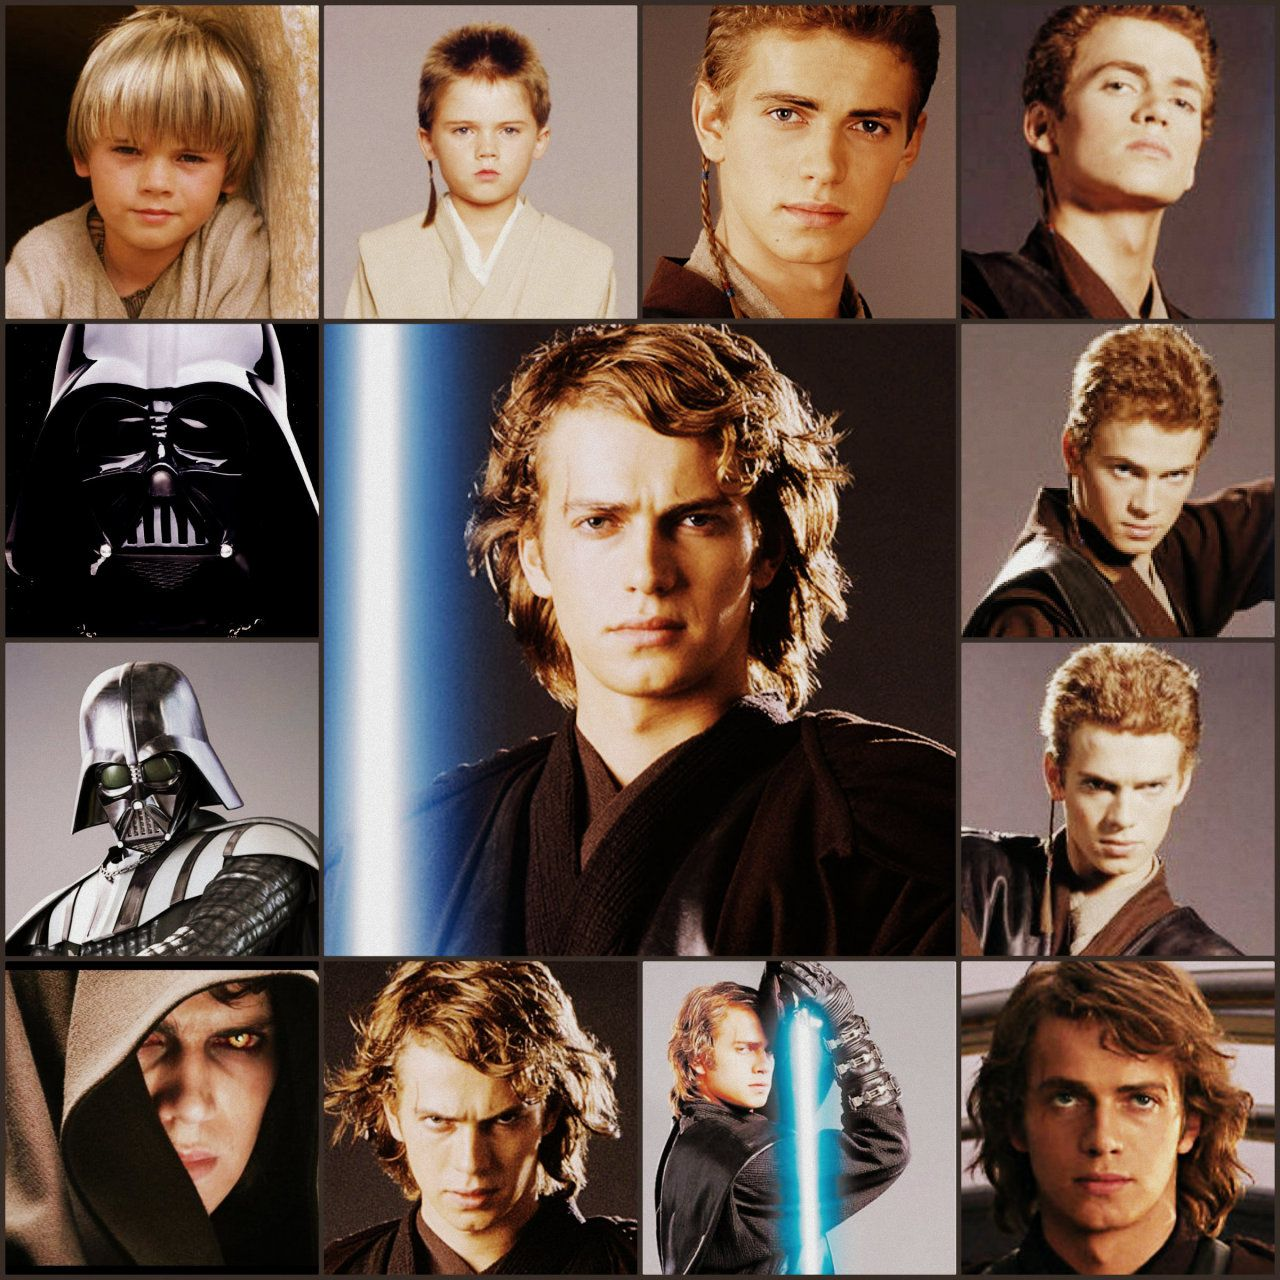 Untitled Star Wars The Lead Characters With Images Star